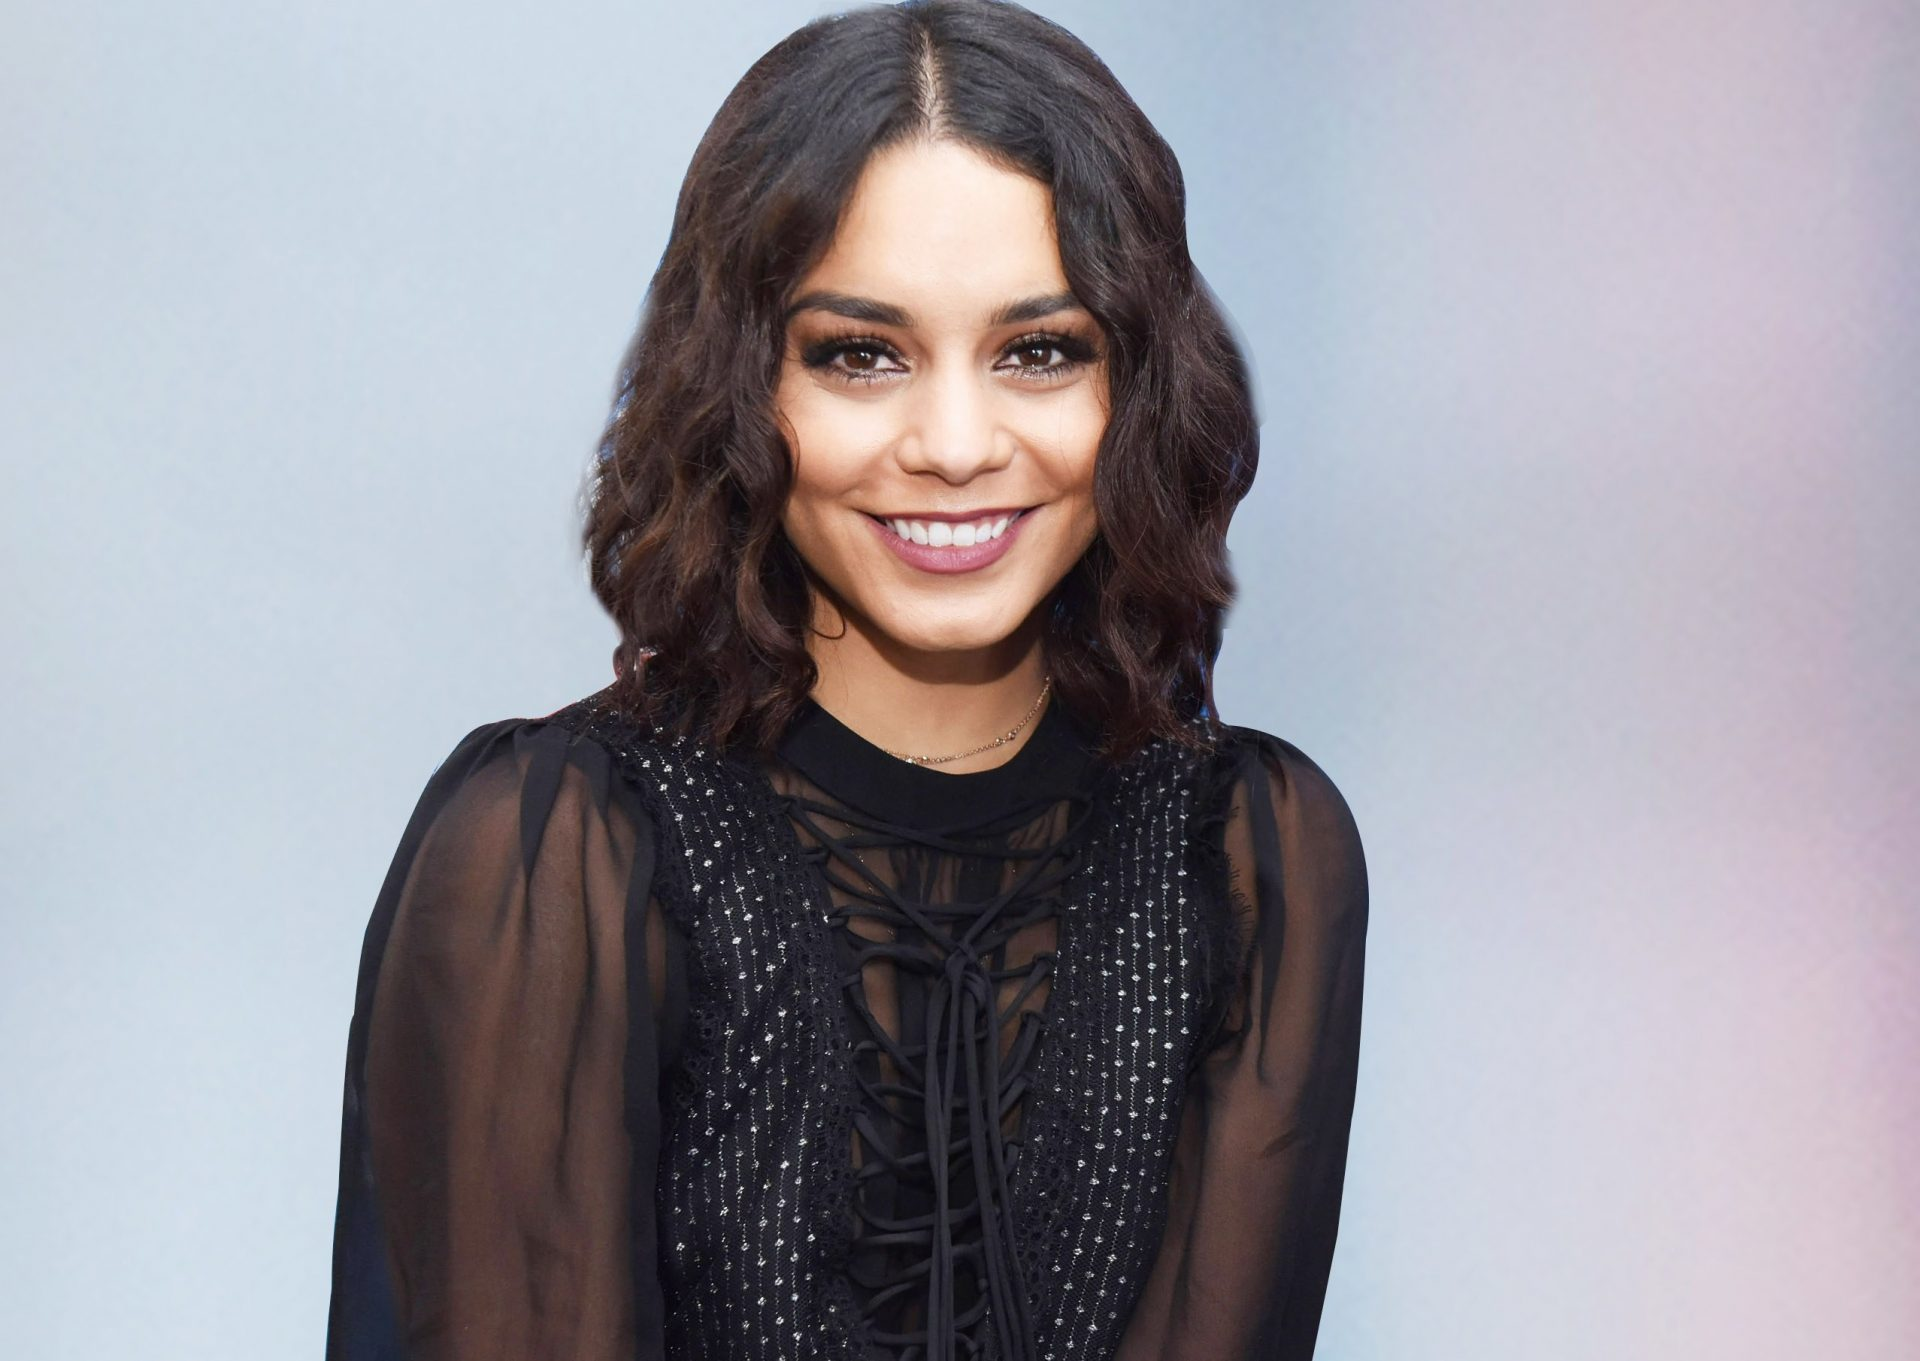 Vanessa Hudgens Family Pictures, Boyfriend, Age, Height